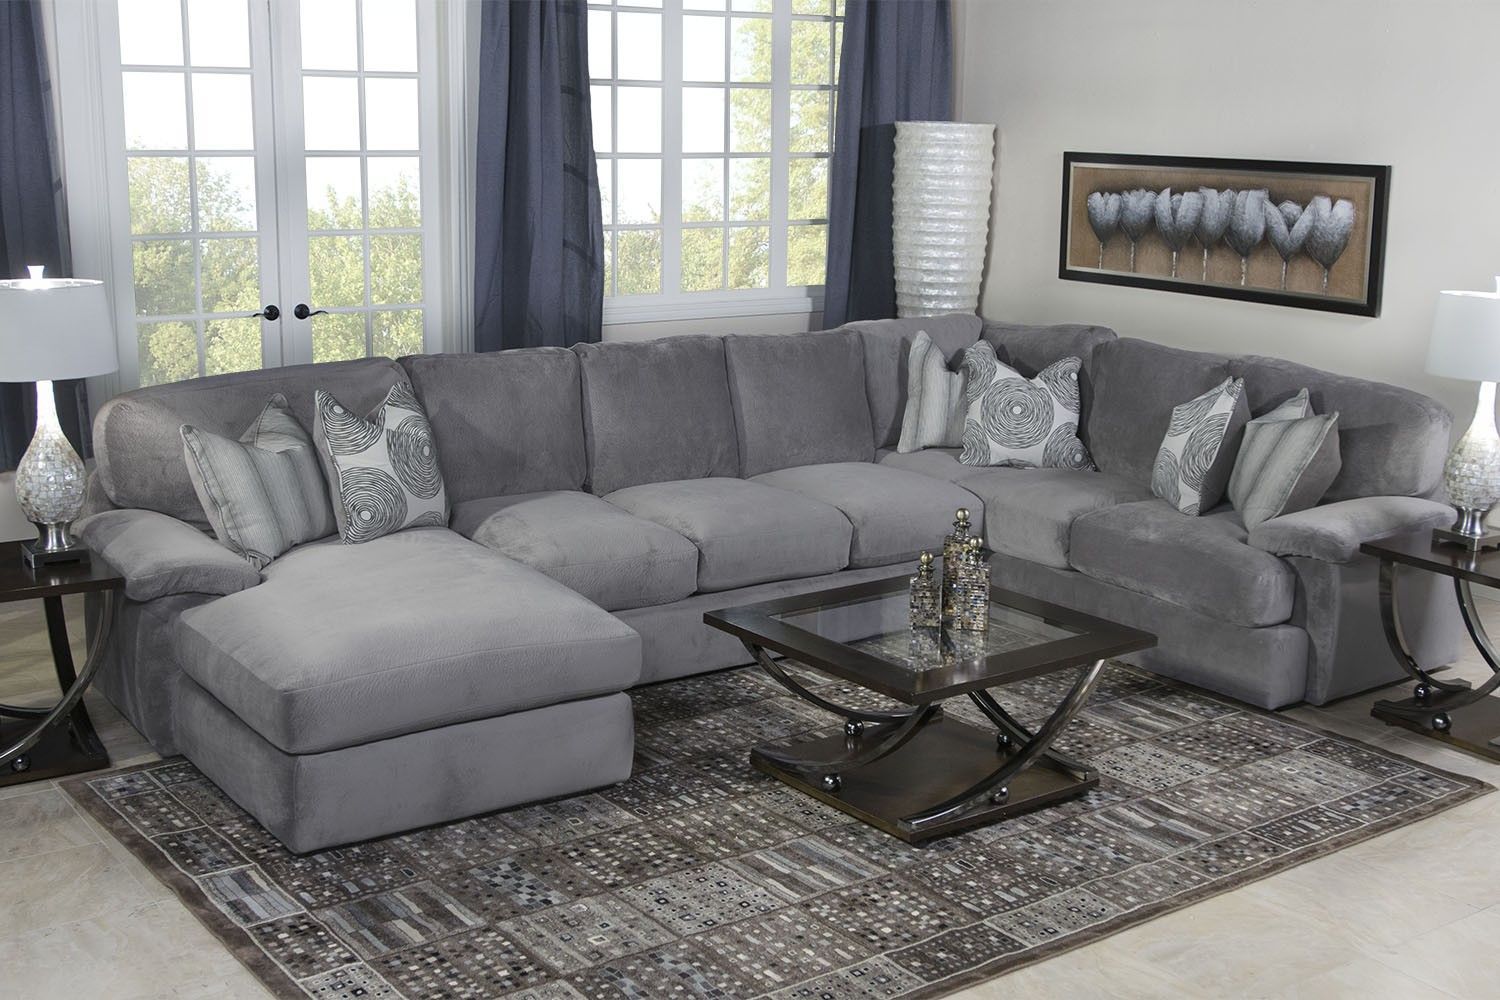 Key west sectional living room in gray living room mor for Sitting room furniture ideas